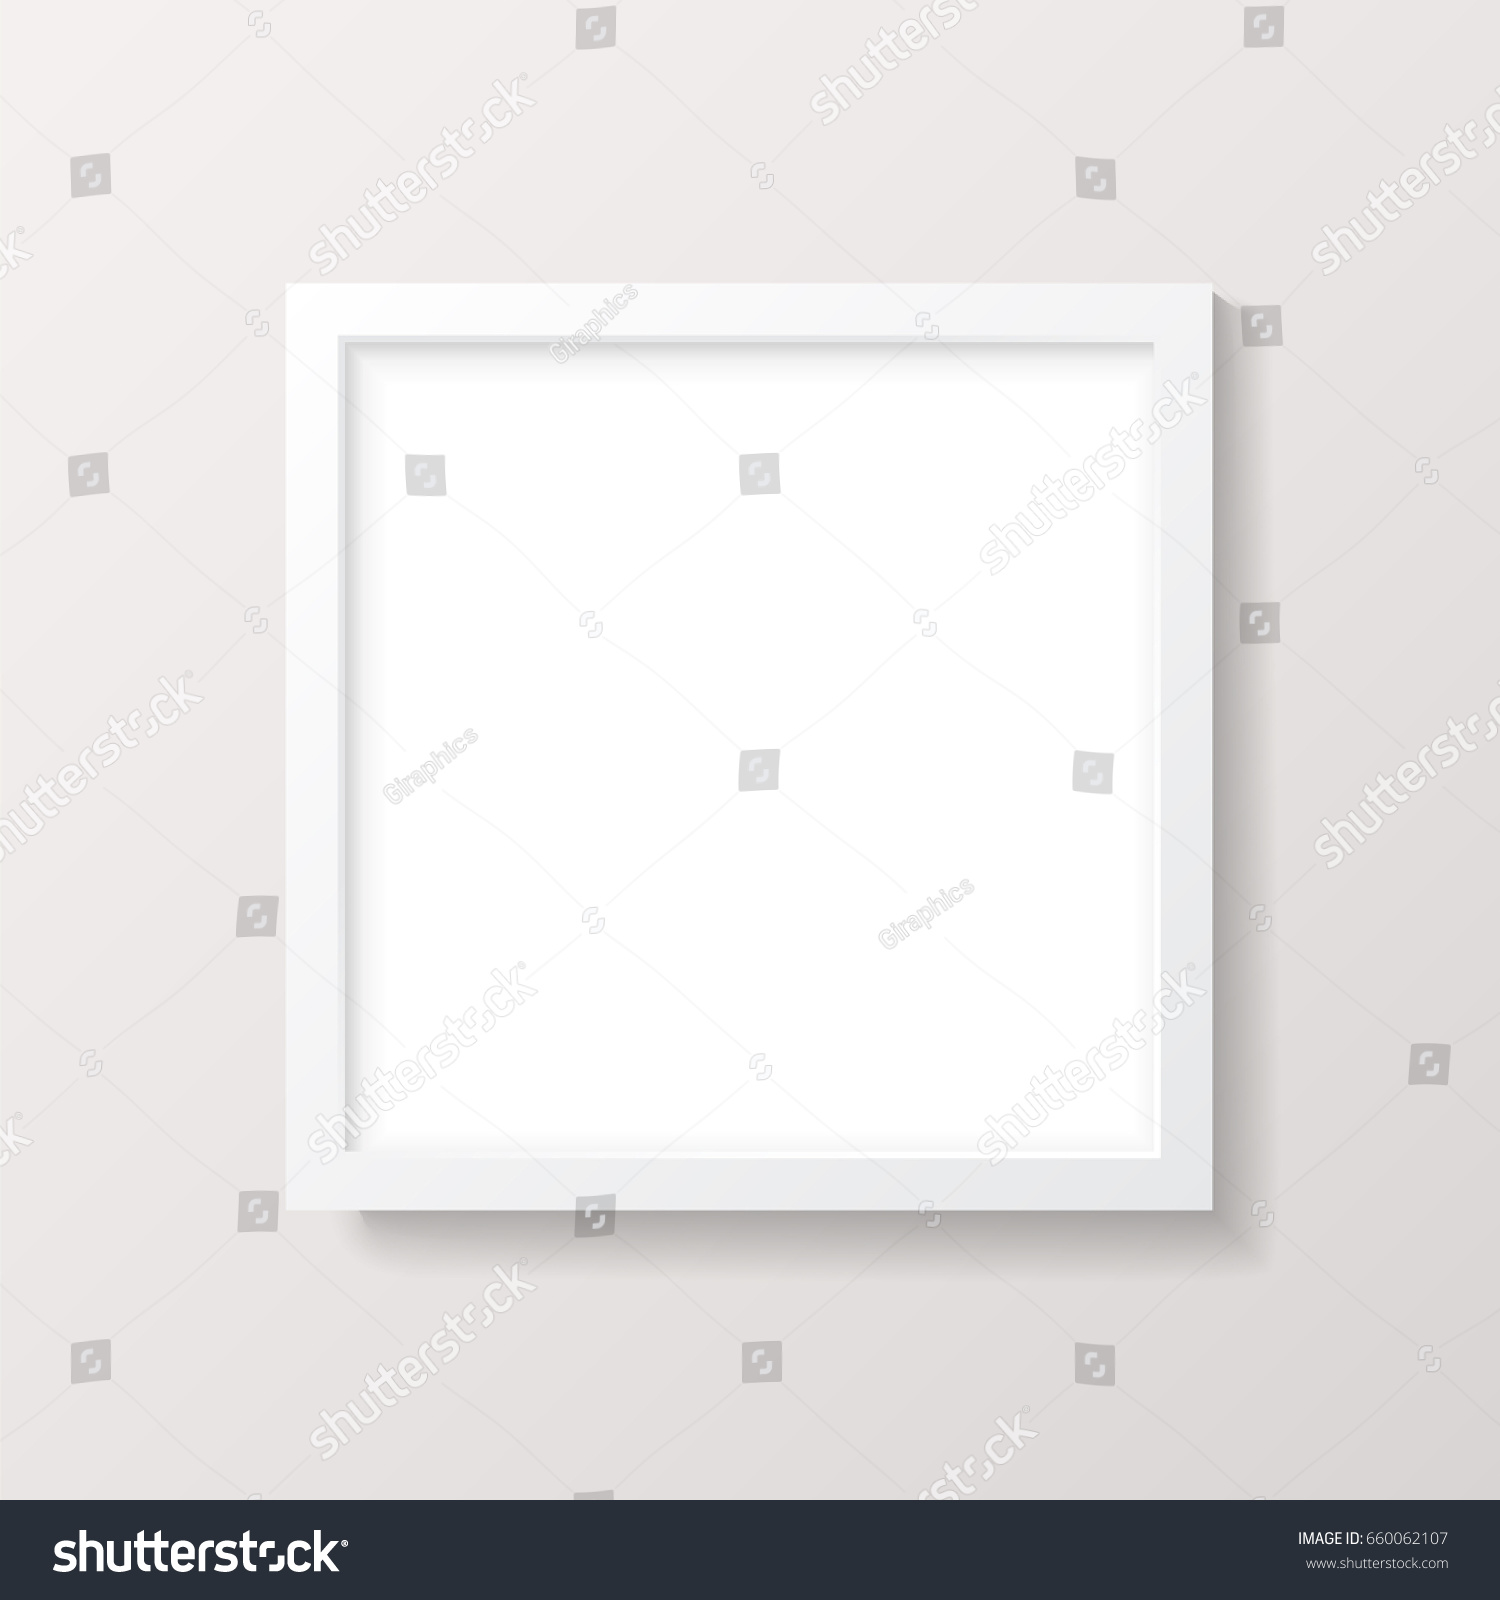 Realistic Empty White Square Picture Frame Stock Vector (Royalty ...